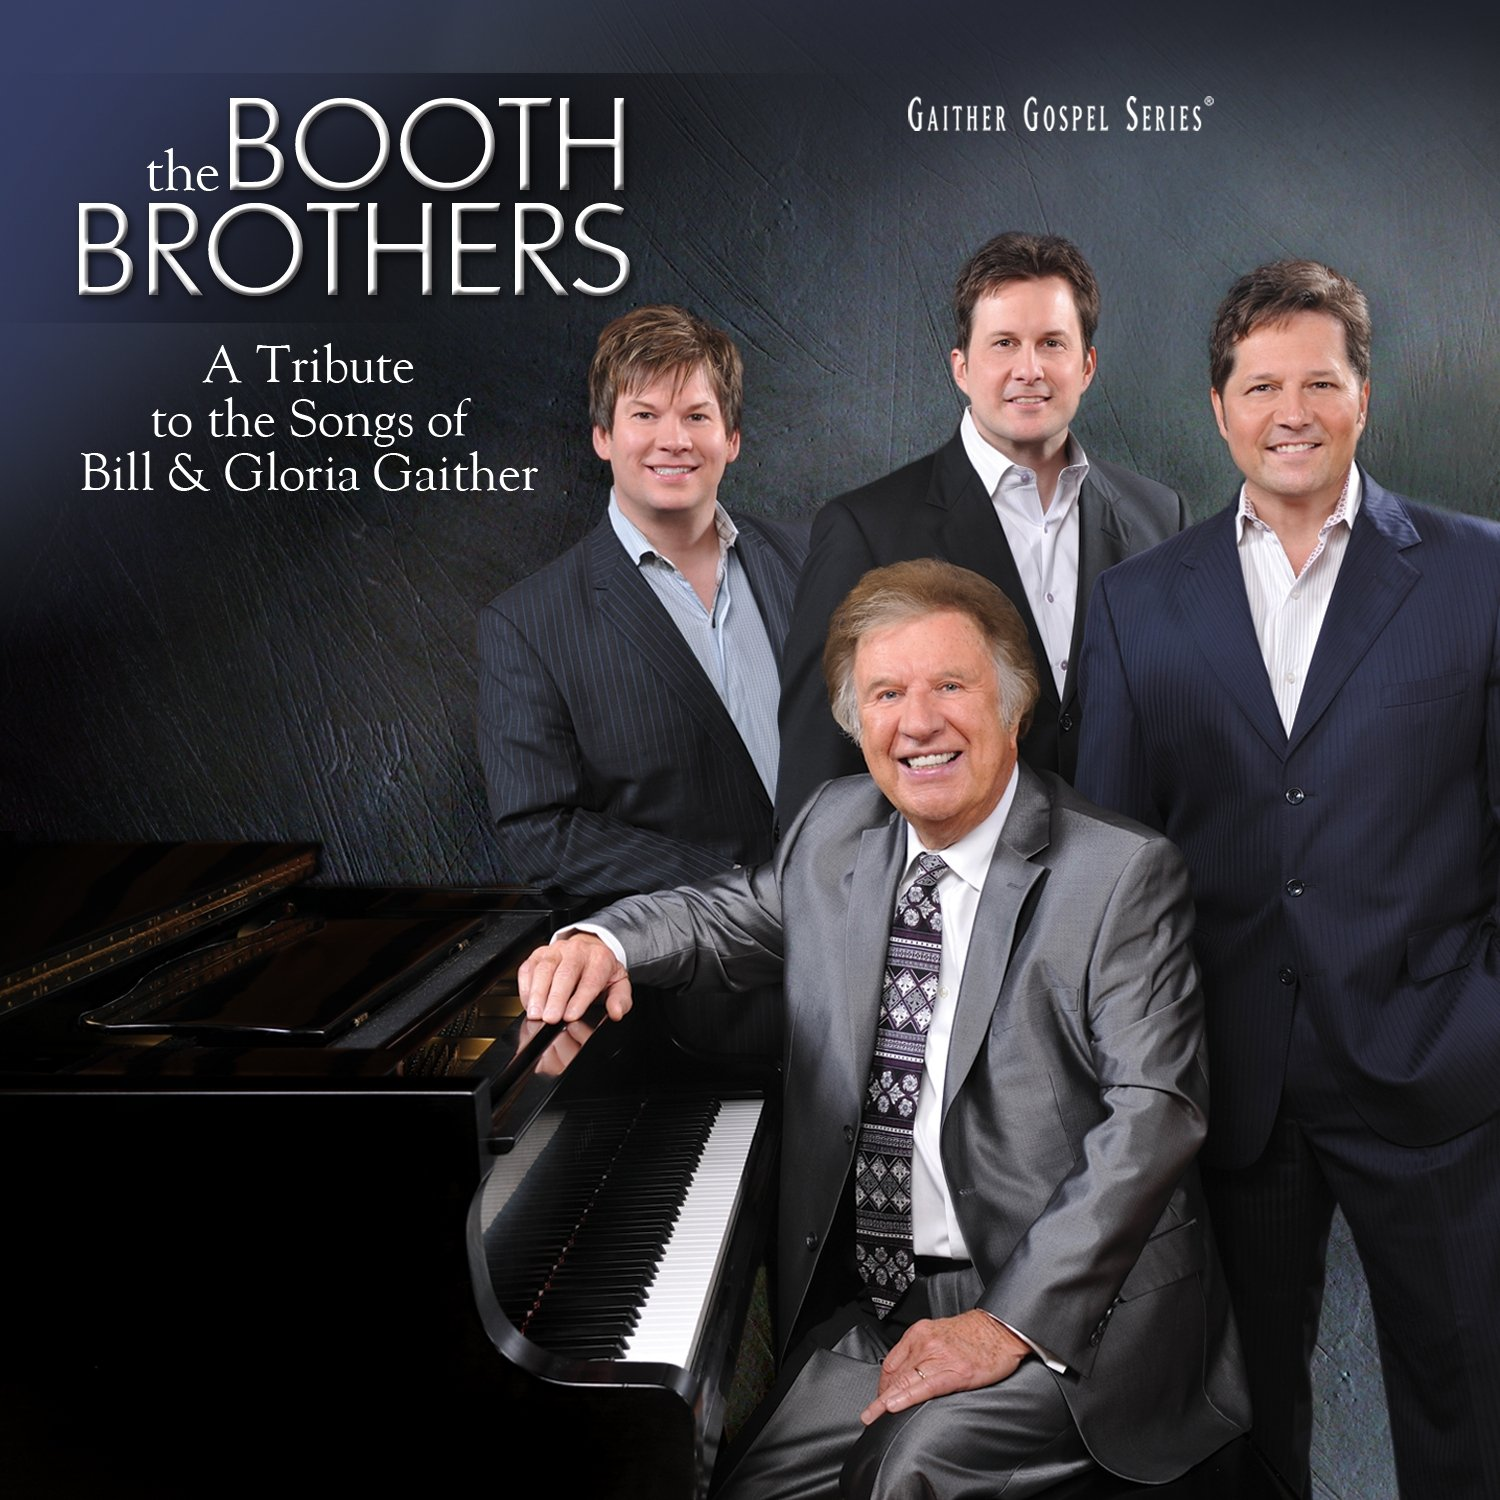 A Tribute to the Songs of Bill & Gloria Gaither by Capitol Christian Distribution